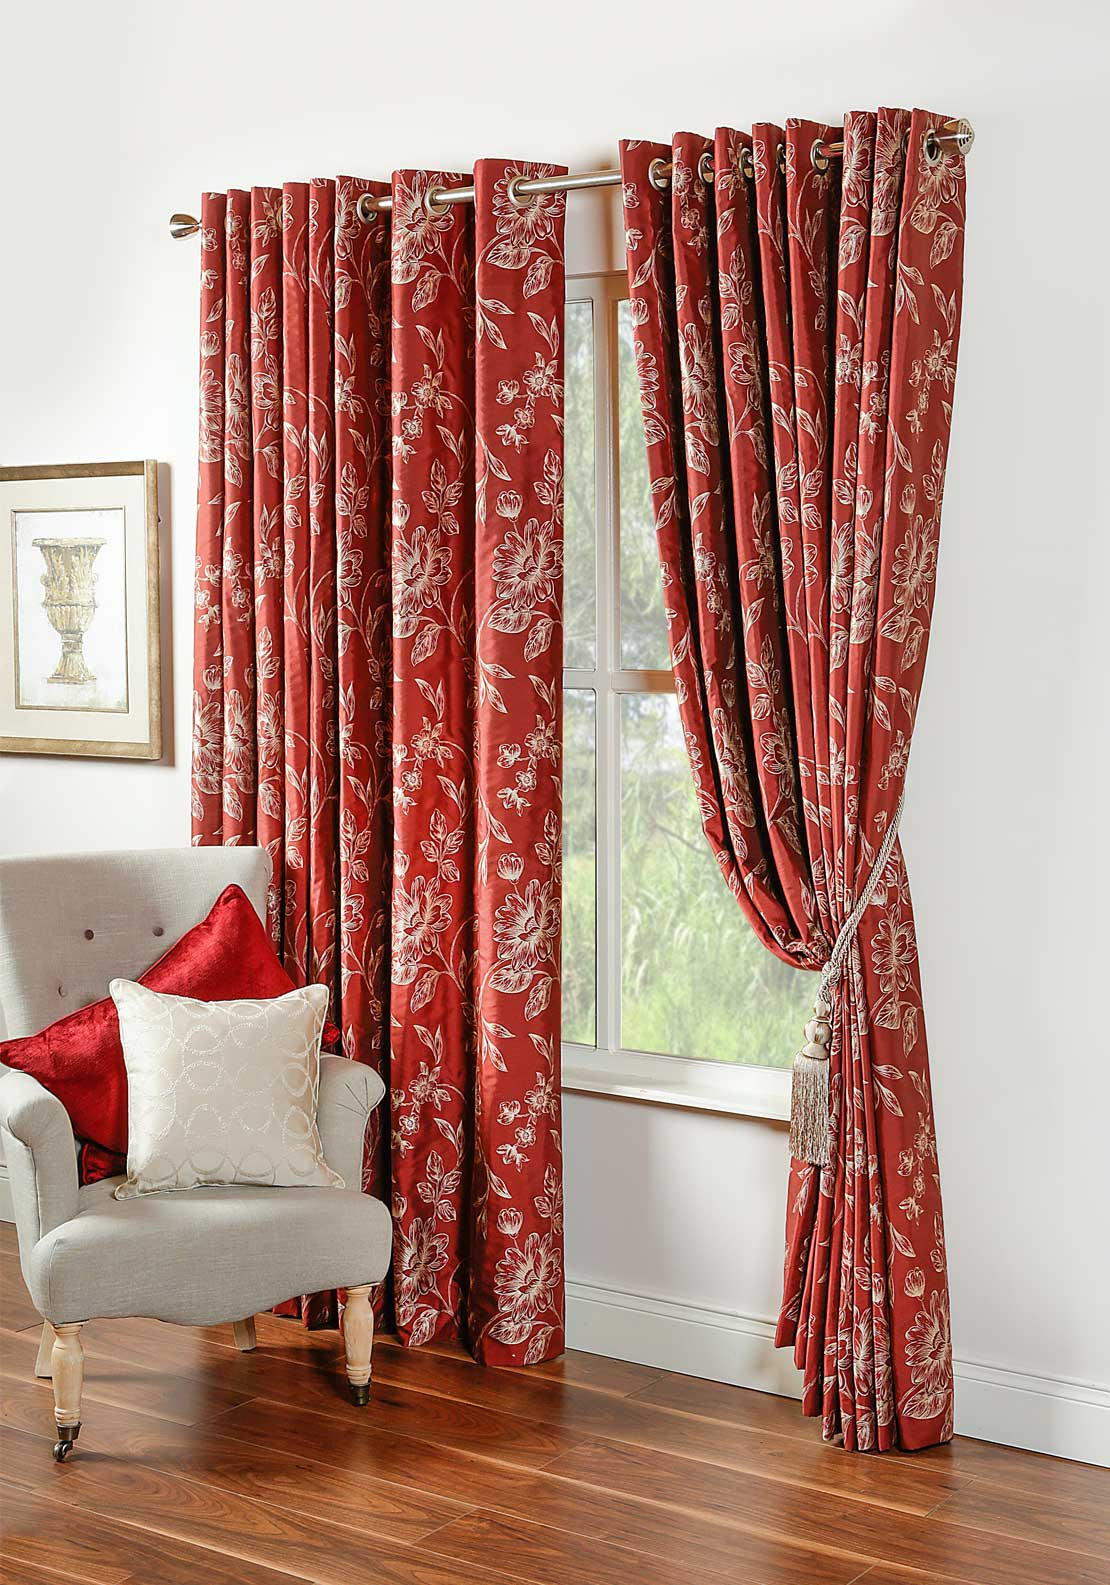 Scatterbox Lucano Fully Lined Ready-Made curtains,114 X 90in, Terracotta